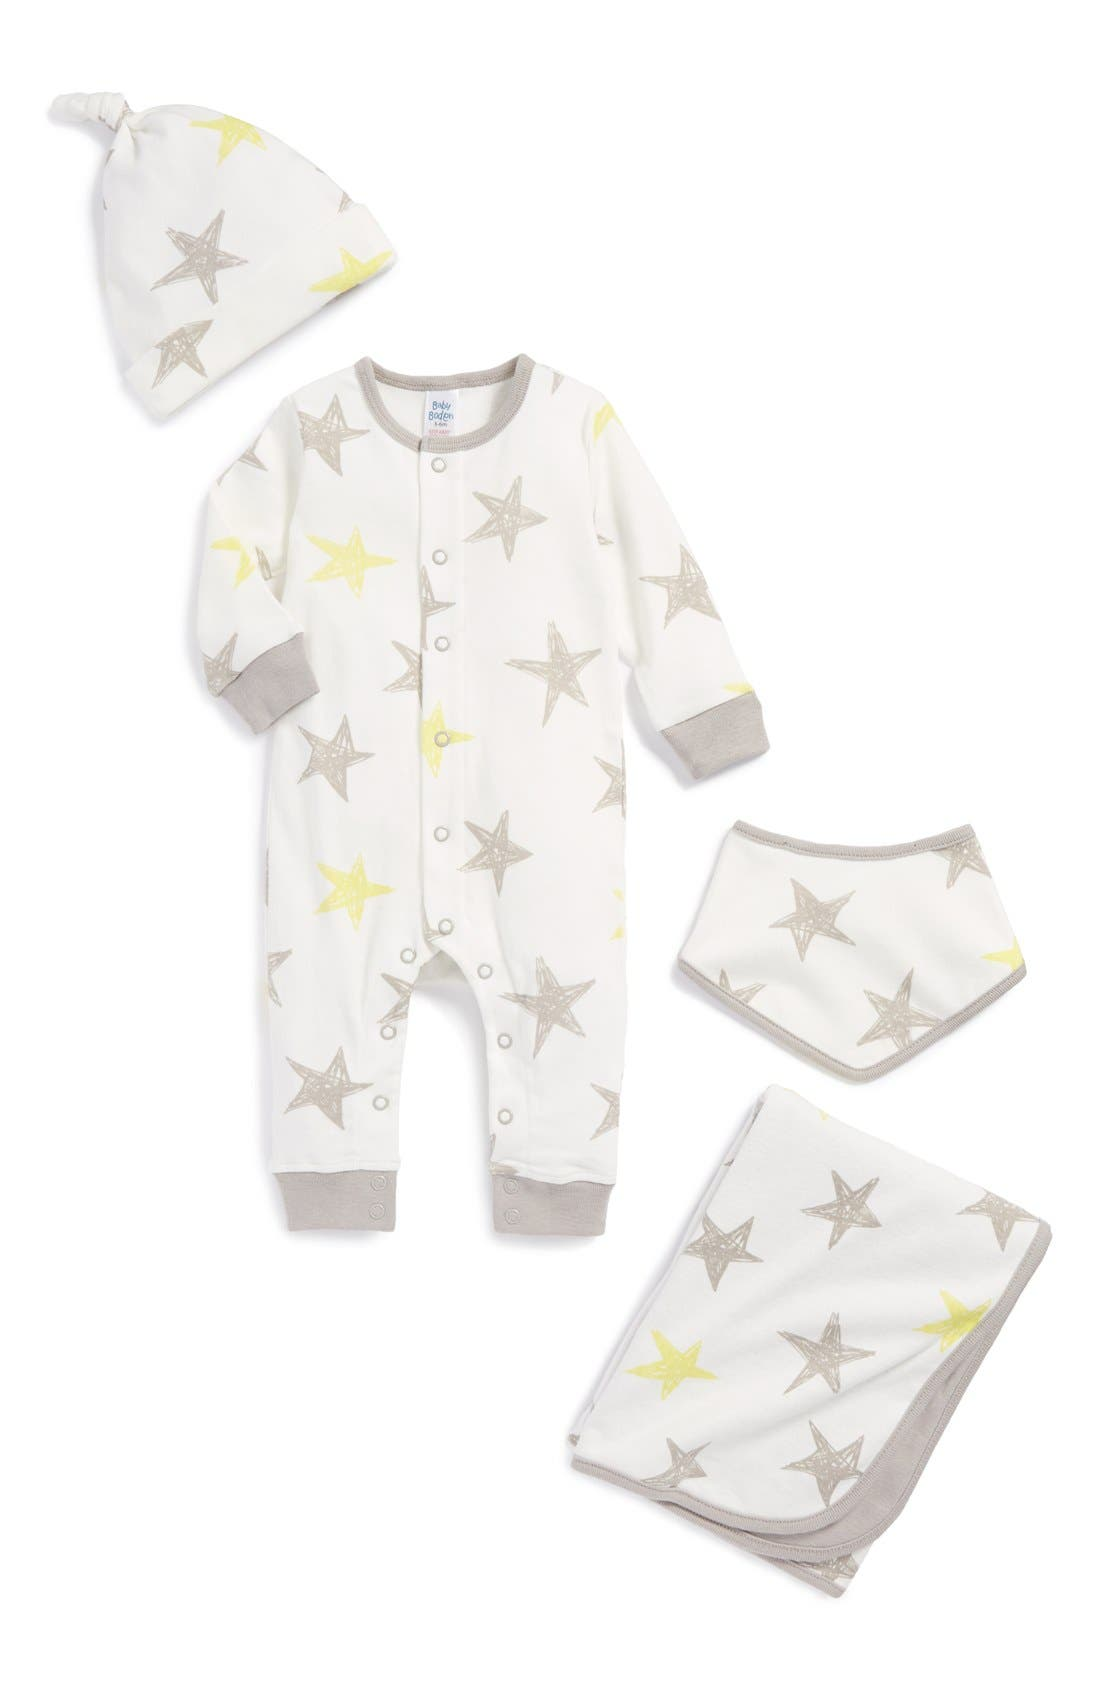 Main Image - Mini Boden Romper, Blanket, Bib & Hat Set (Baby)